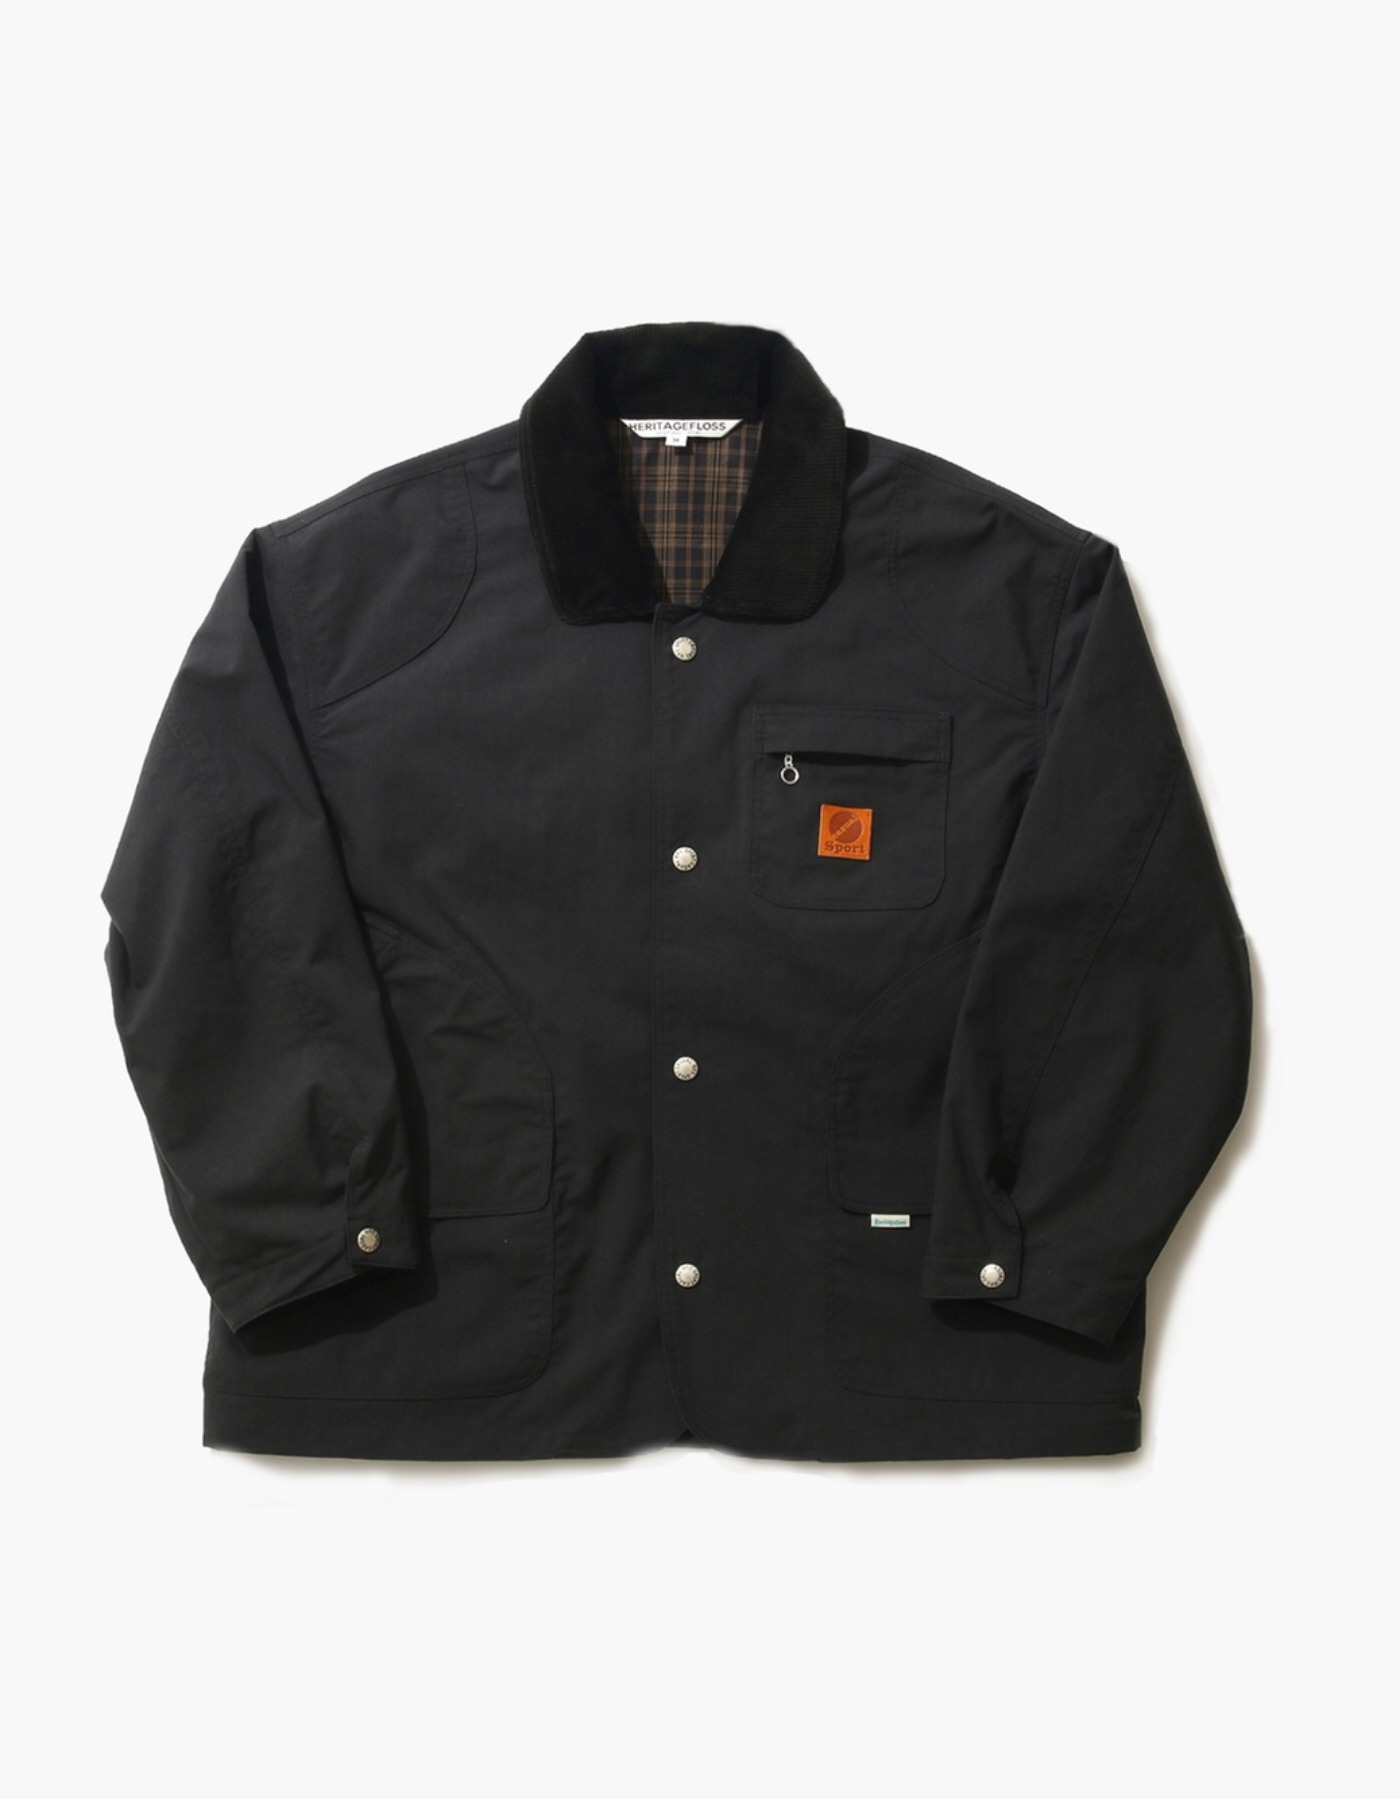 NYLON HUNTING JACKET / BLACK